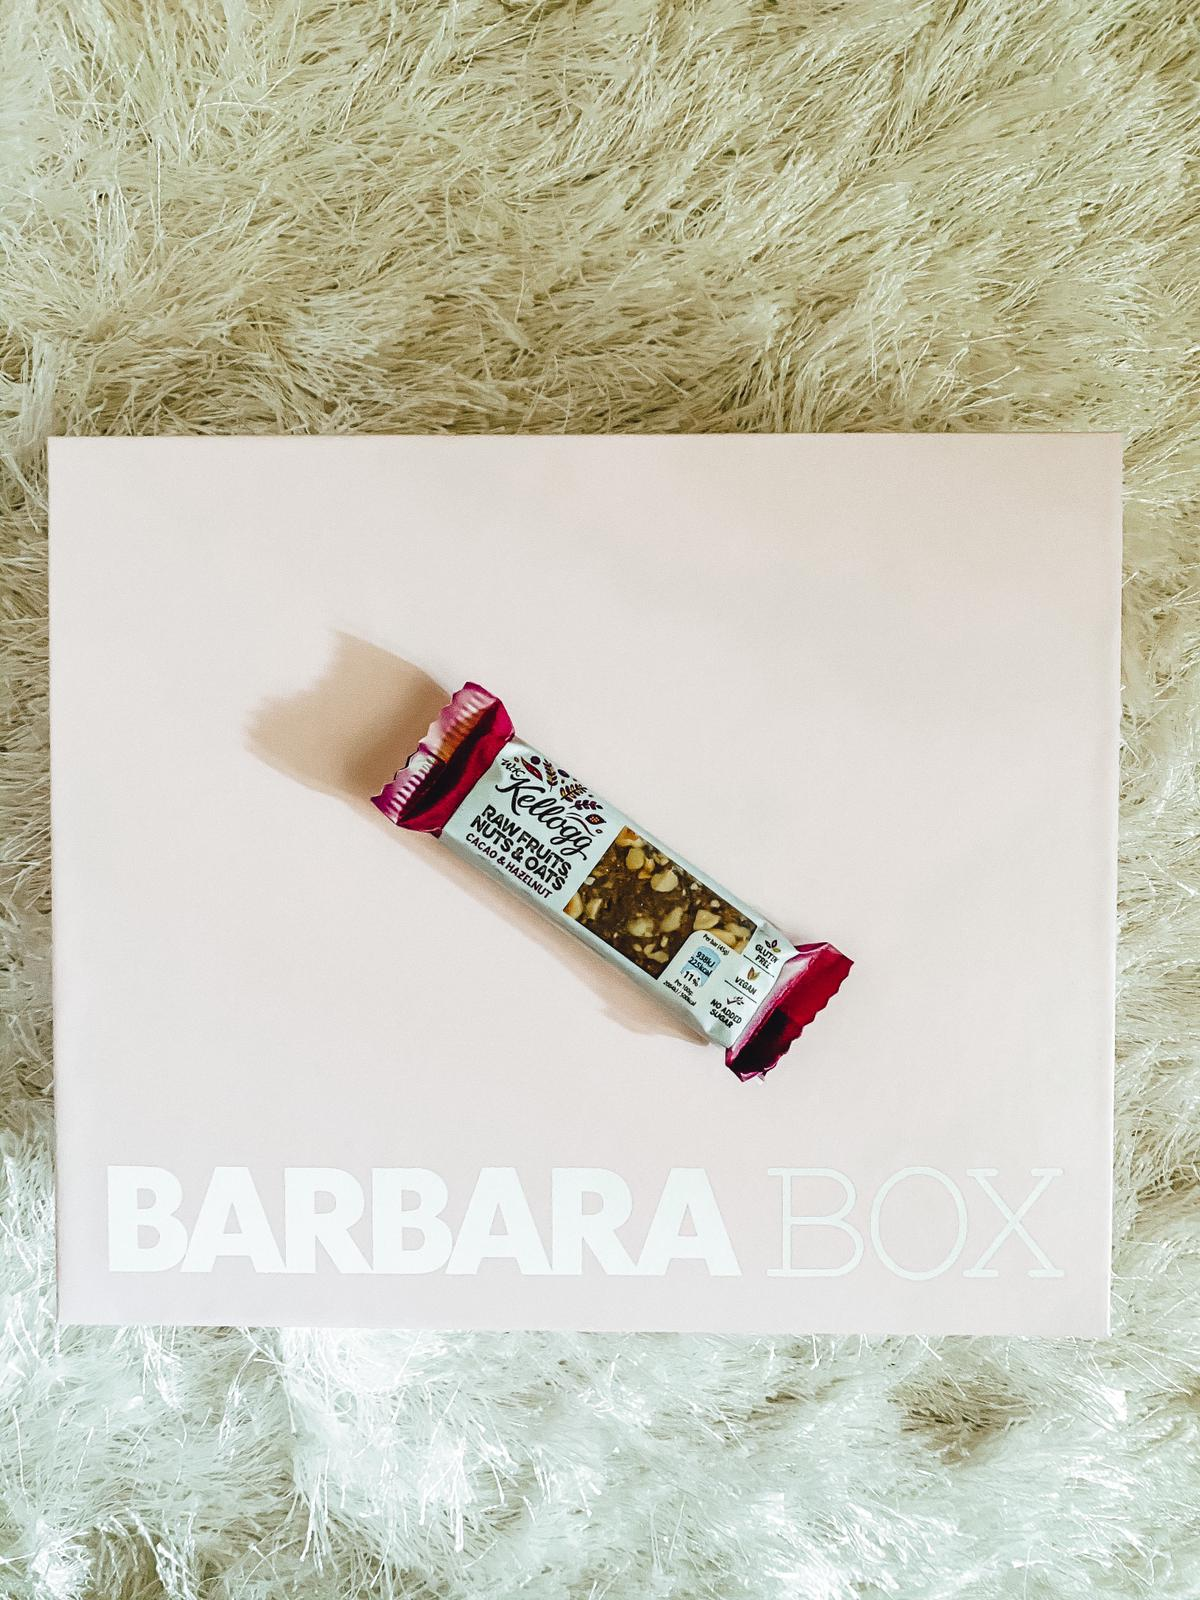 Barbara Box Summer Power - W.K. Kellogg